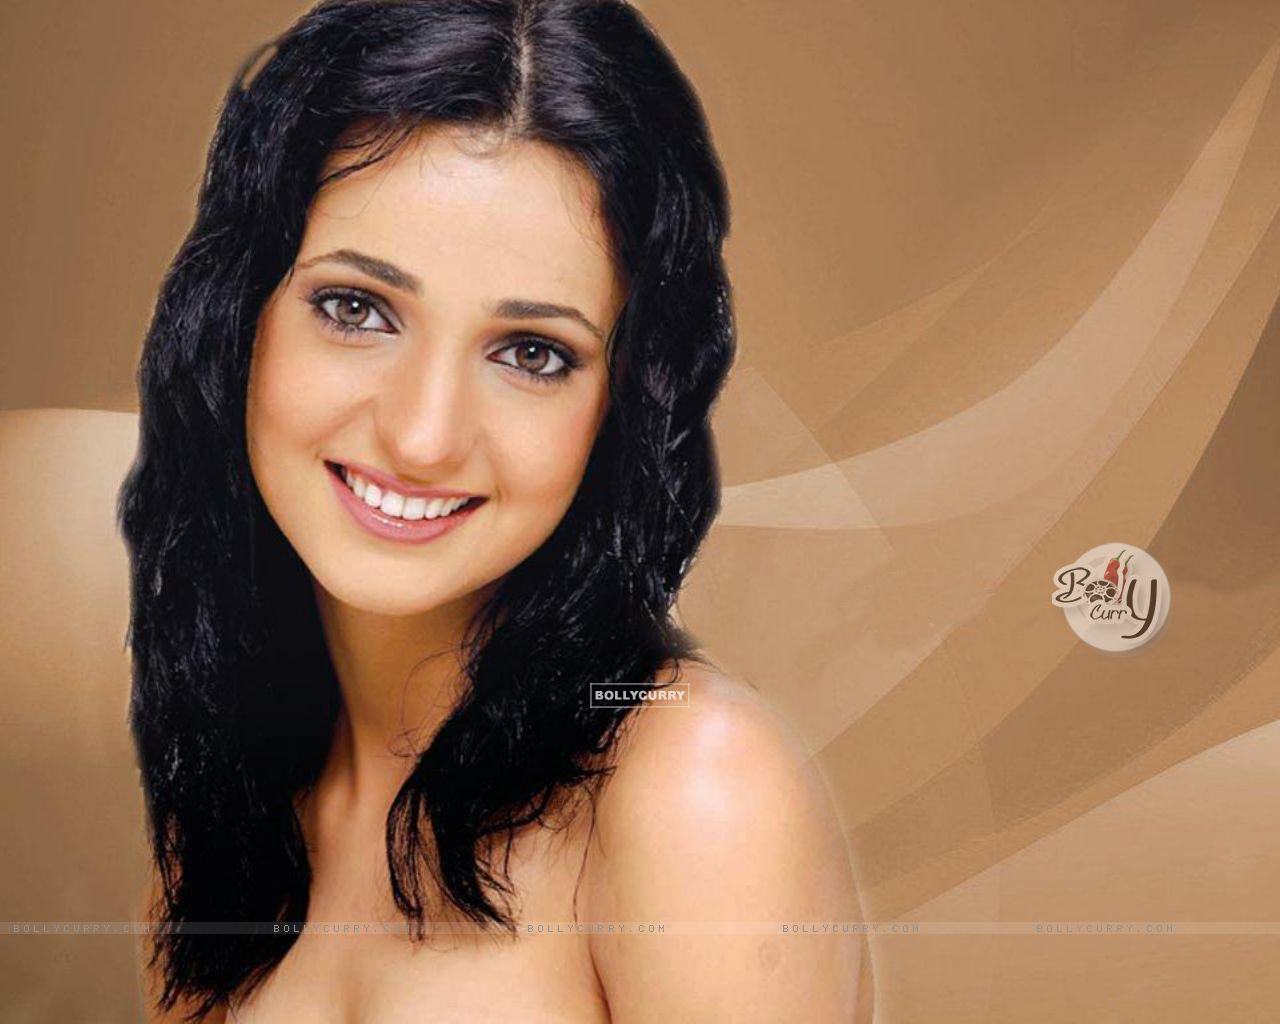 sanaya irani wallpaper free download